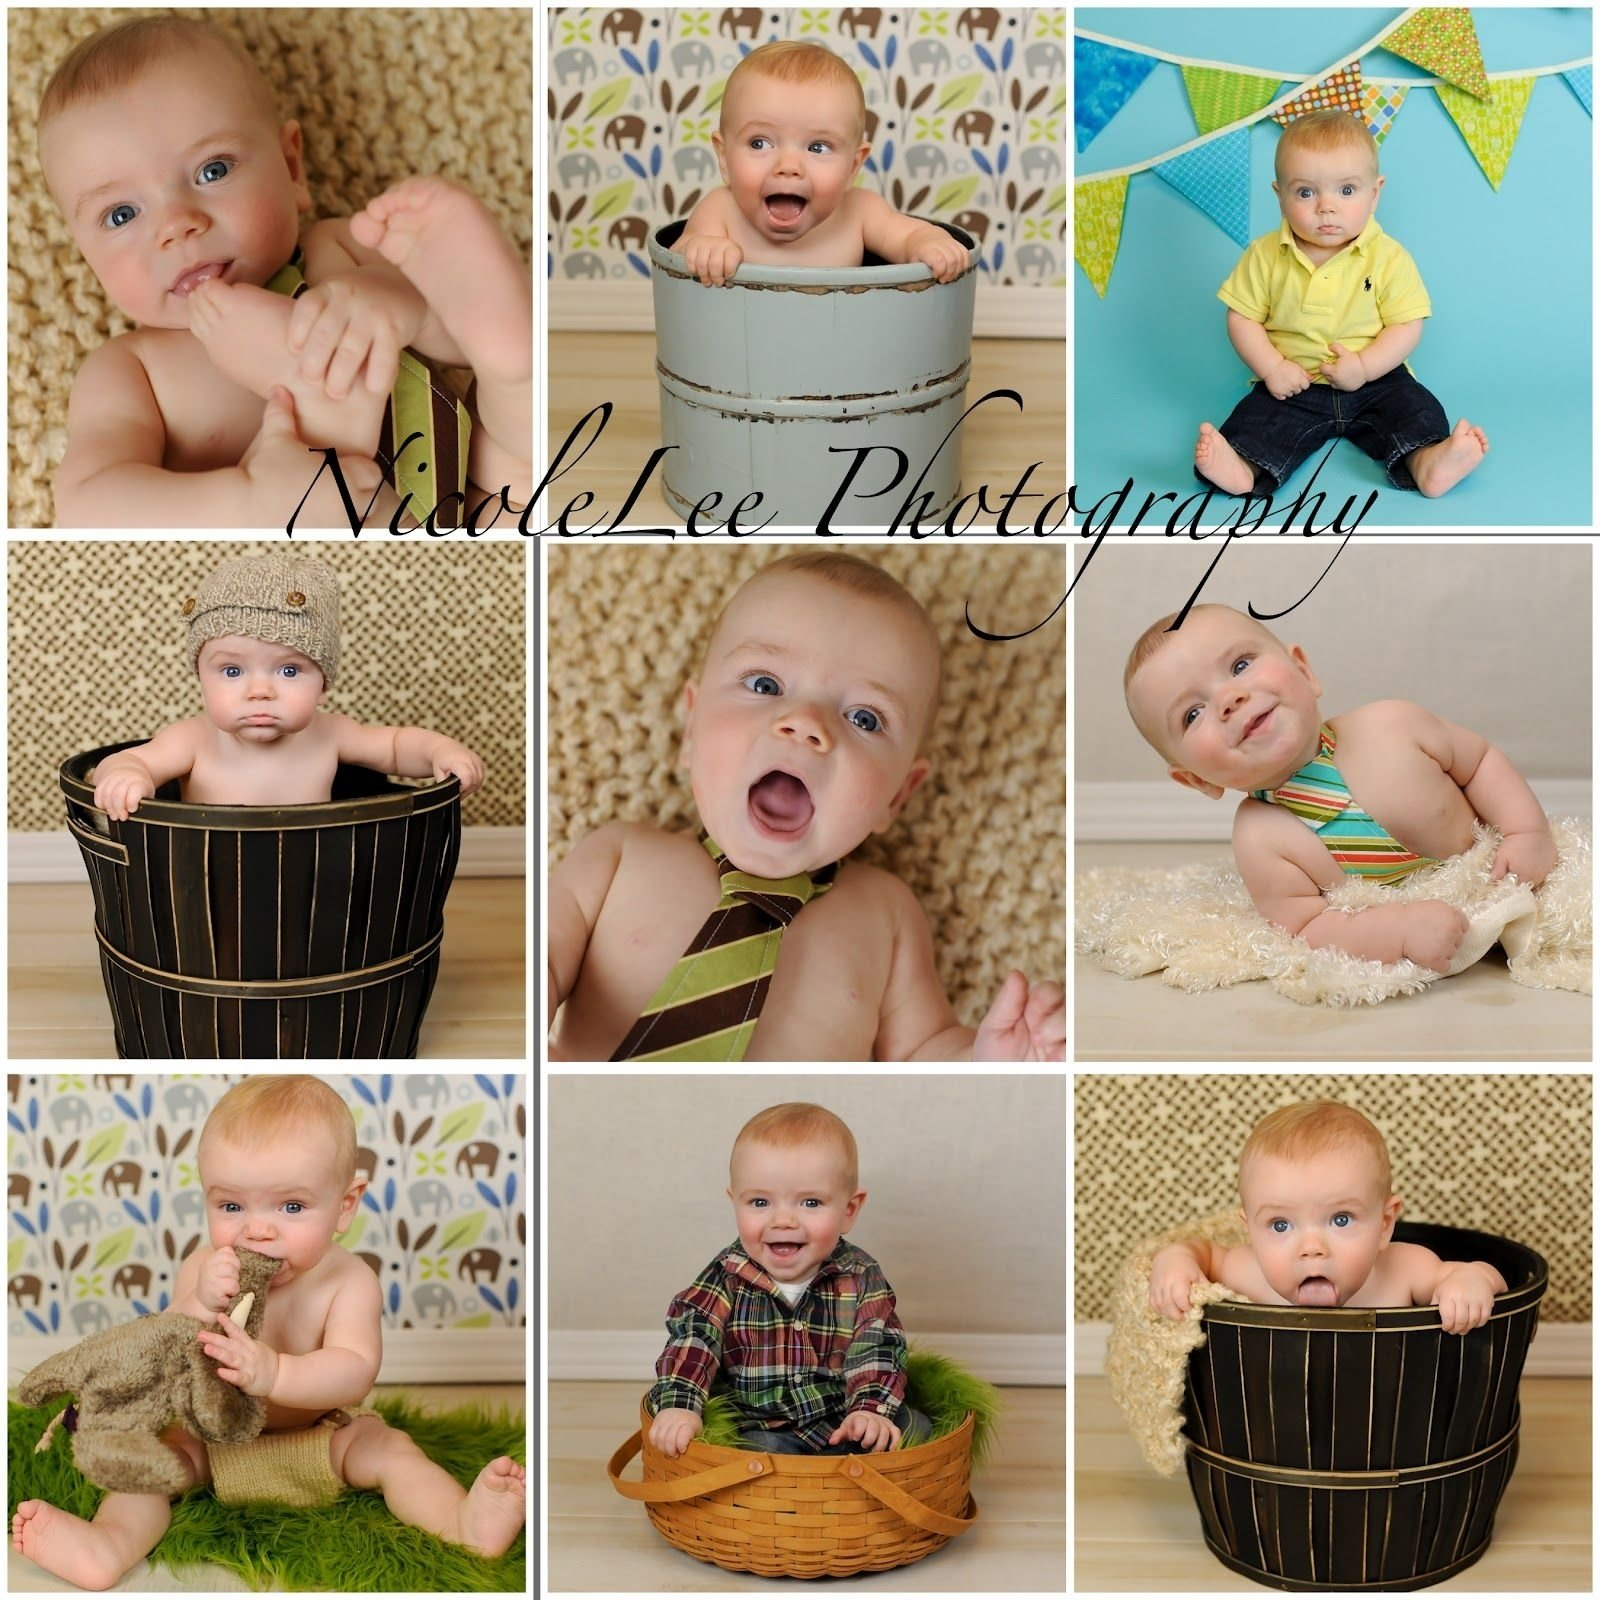 10 Attractive 4 Month Old Baby Picture Ideas 6monthboyphotoideas nicolelee photography chases faces 2020